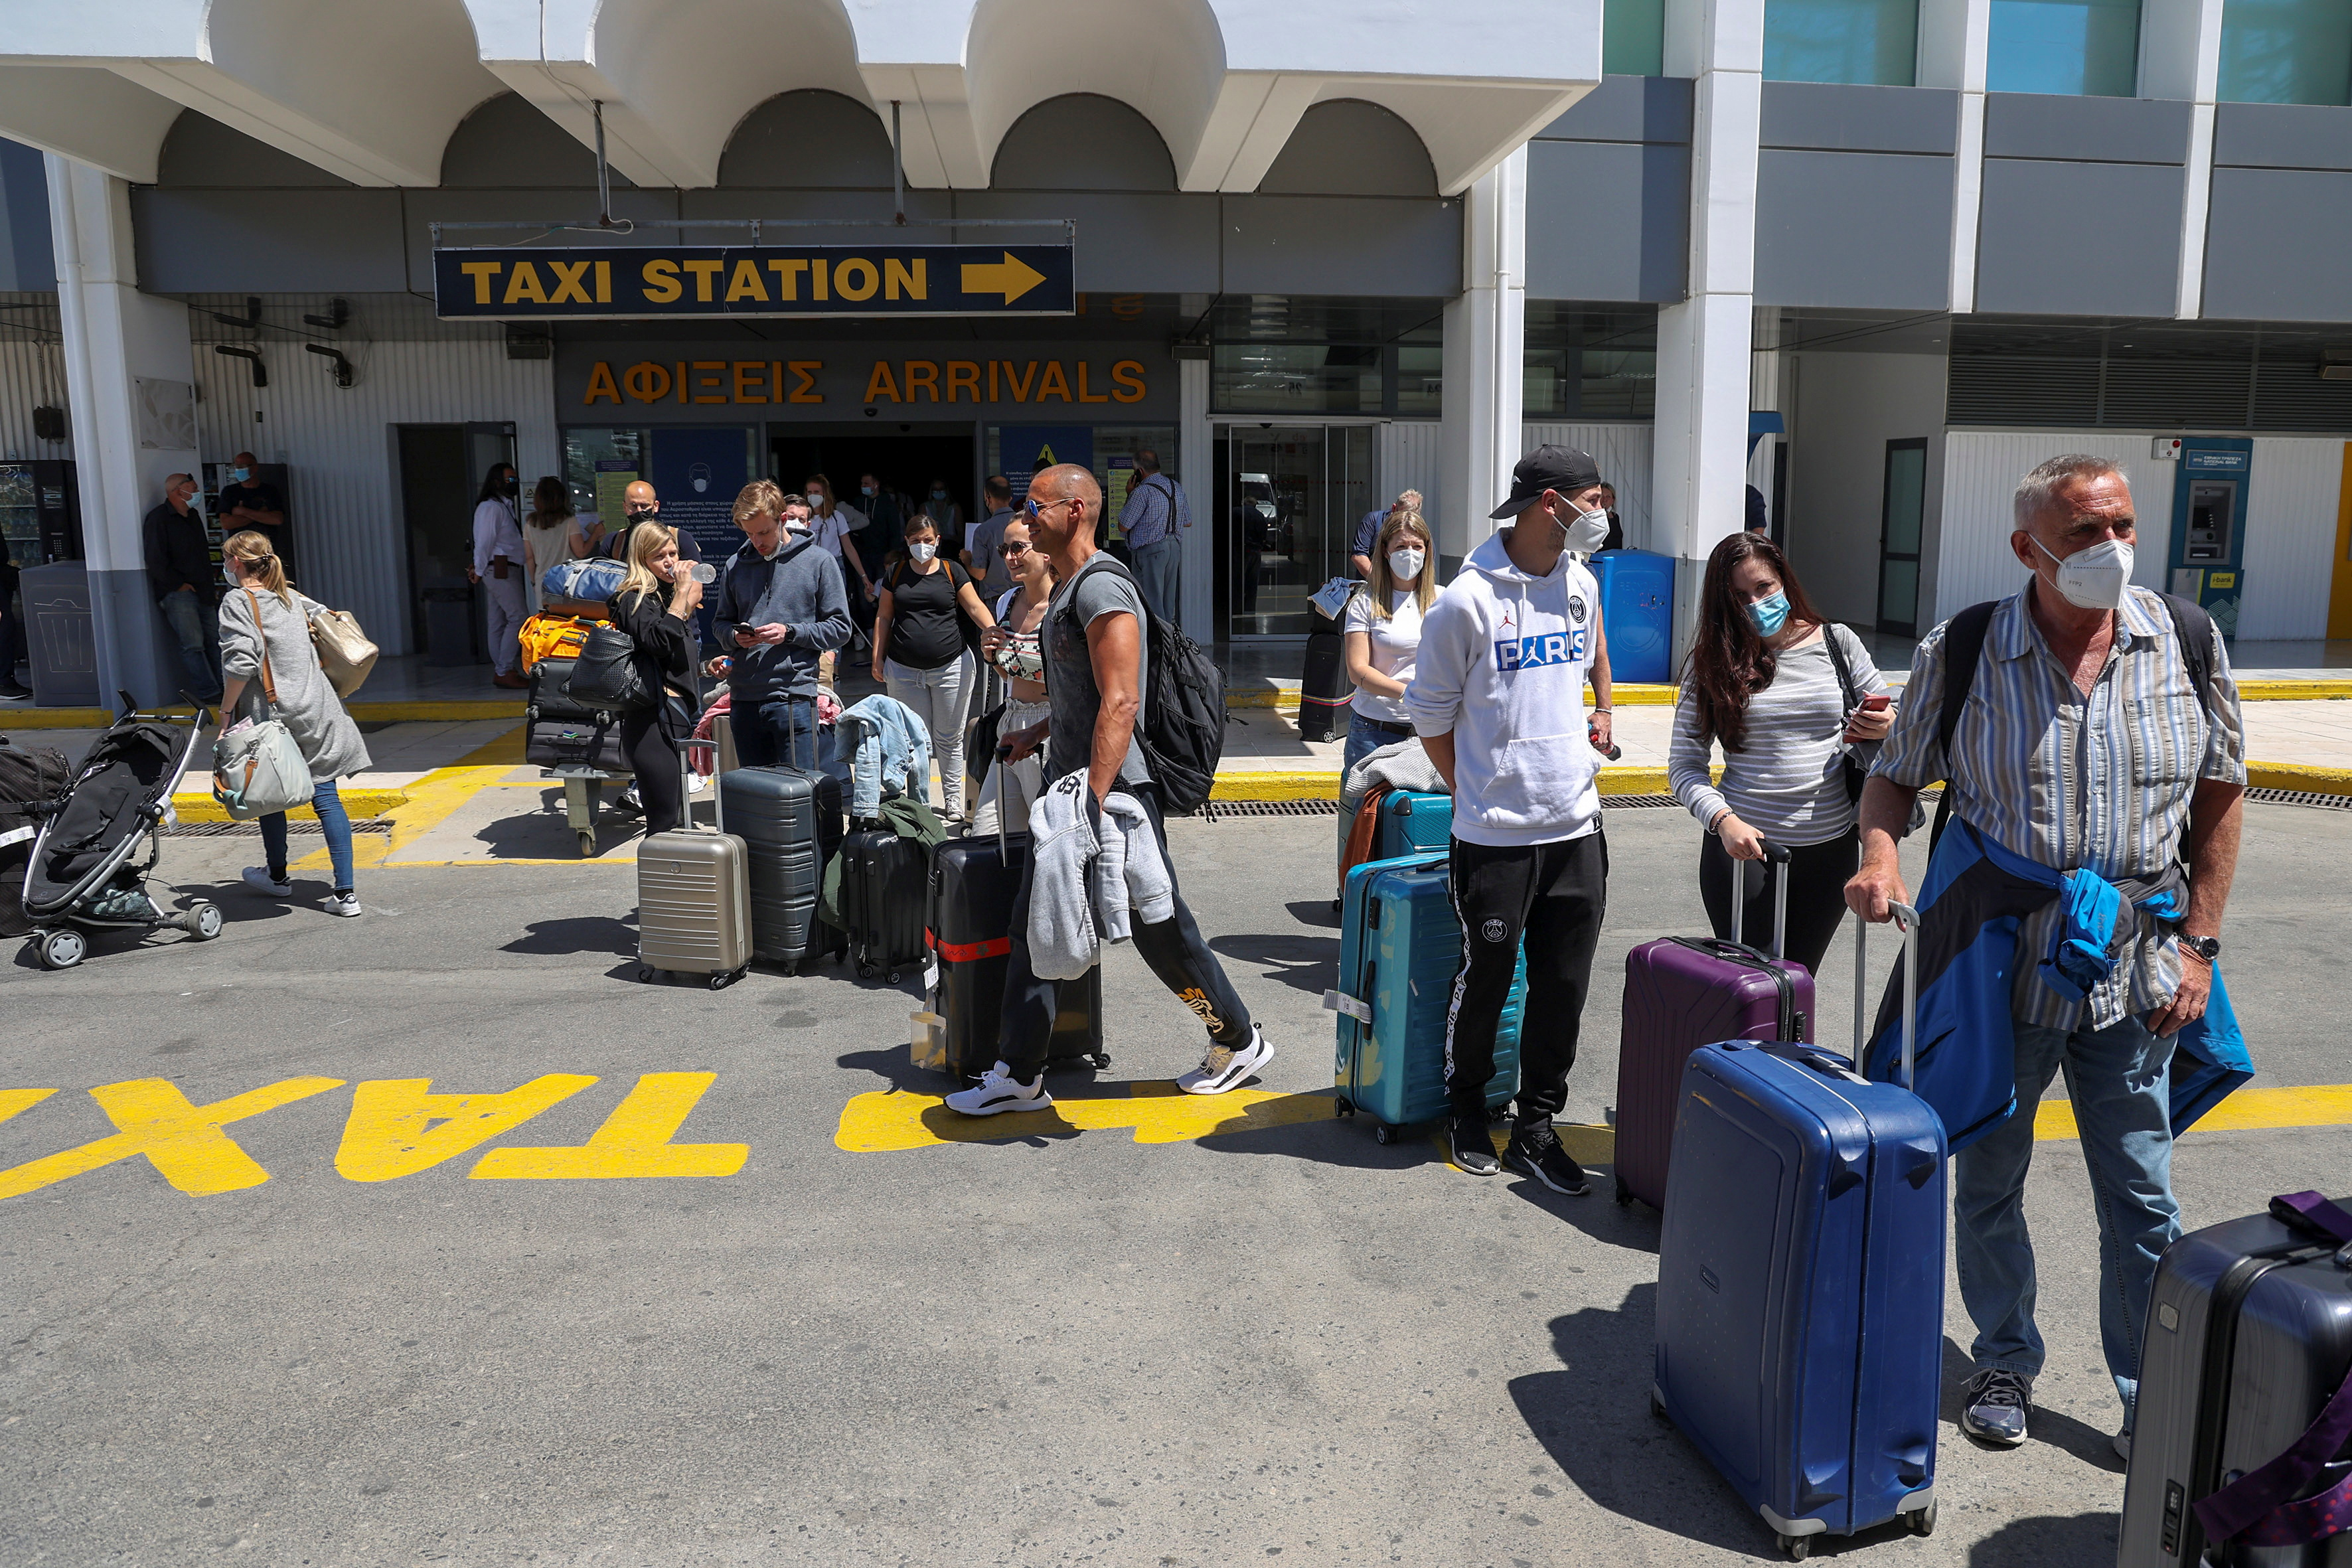 Passengers arriving from Germany and Switzerland stand with their luggage outside the terminal of the Heraklion airport, as the country's tourism season officially opens, on the island of Crete, Greece, May 15, 2021. REUTERS/Stefanos Rapanis